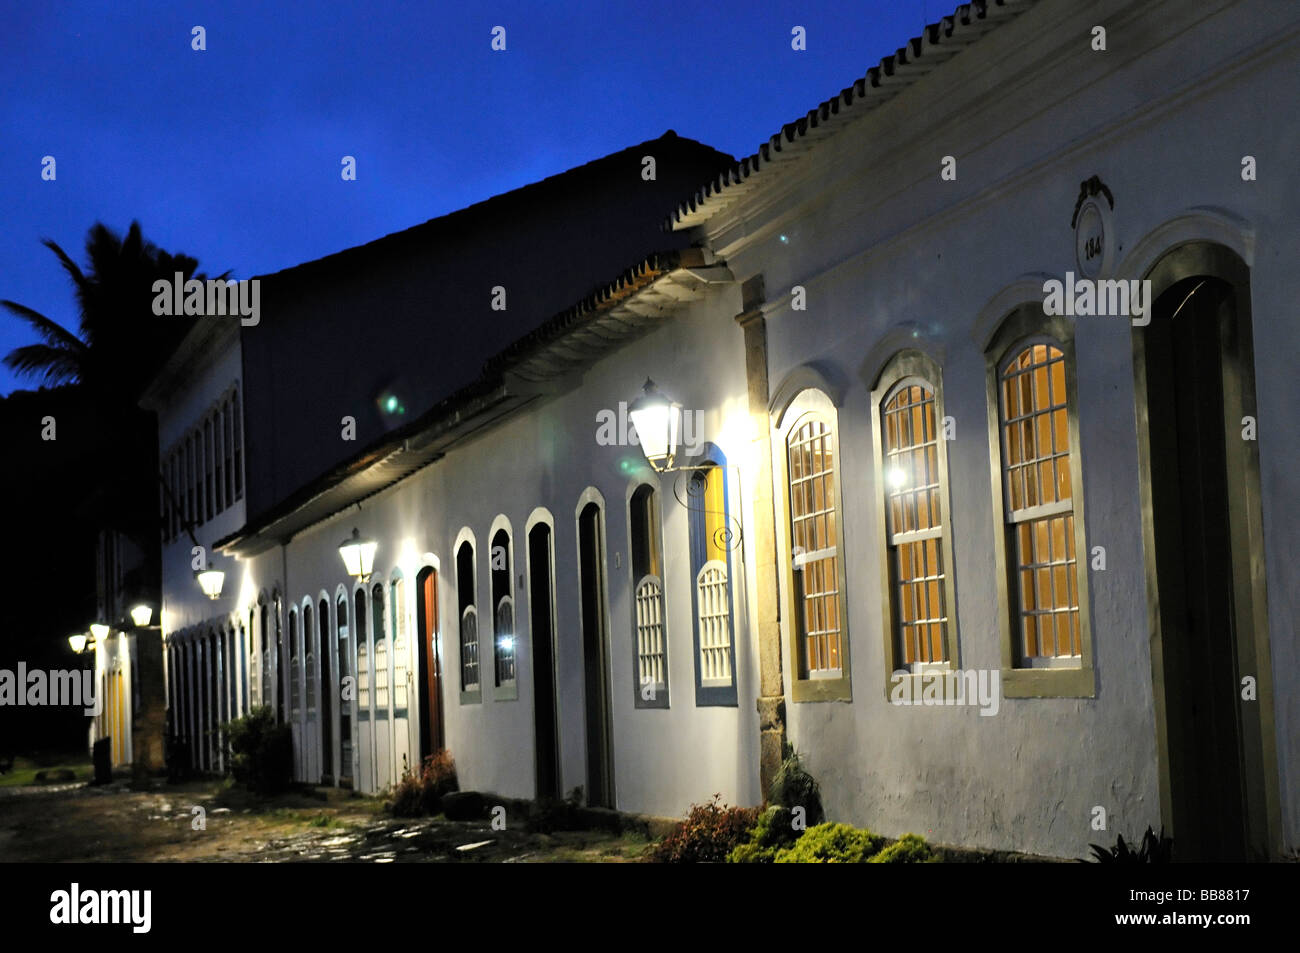 Row of houses in baroque historic city at night, Parati, Paraty, Rio de Janeiro, Brazil, South America - Stock Image